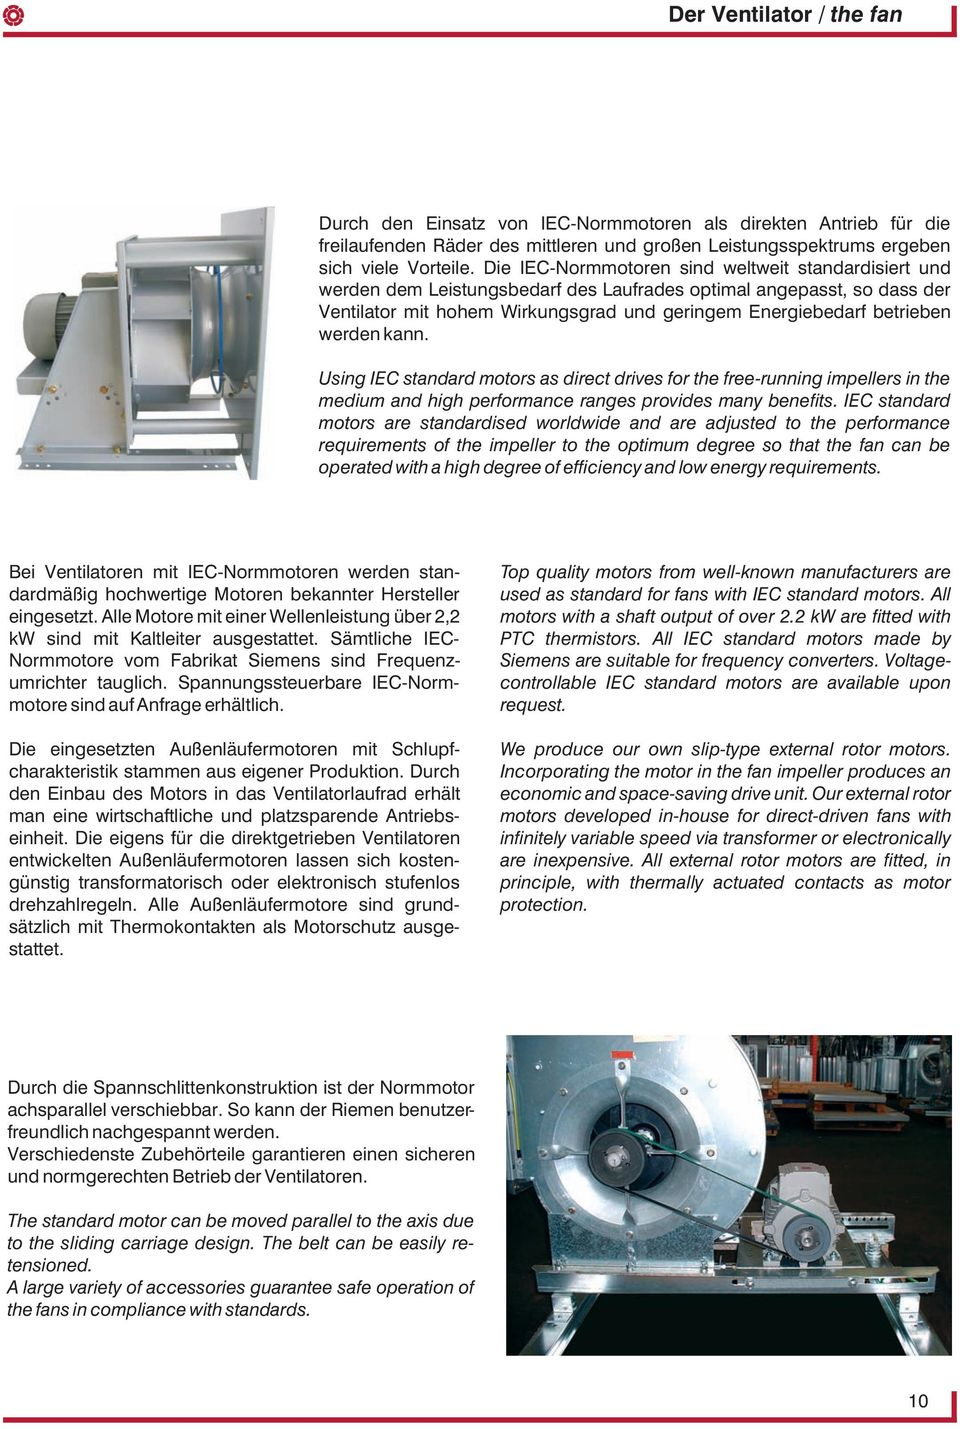 werden kann. Using IEC standard motors as direct drives for the free-running impellers in the medium and high performance ranges provides many benefits.